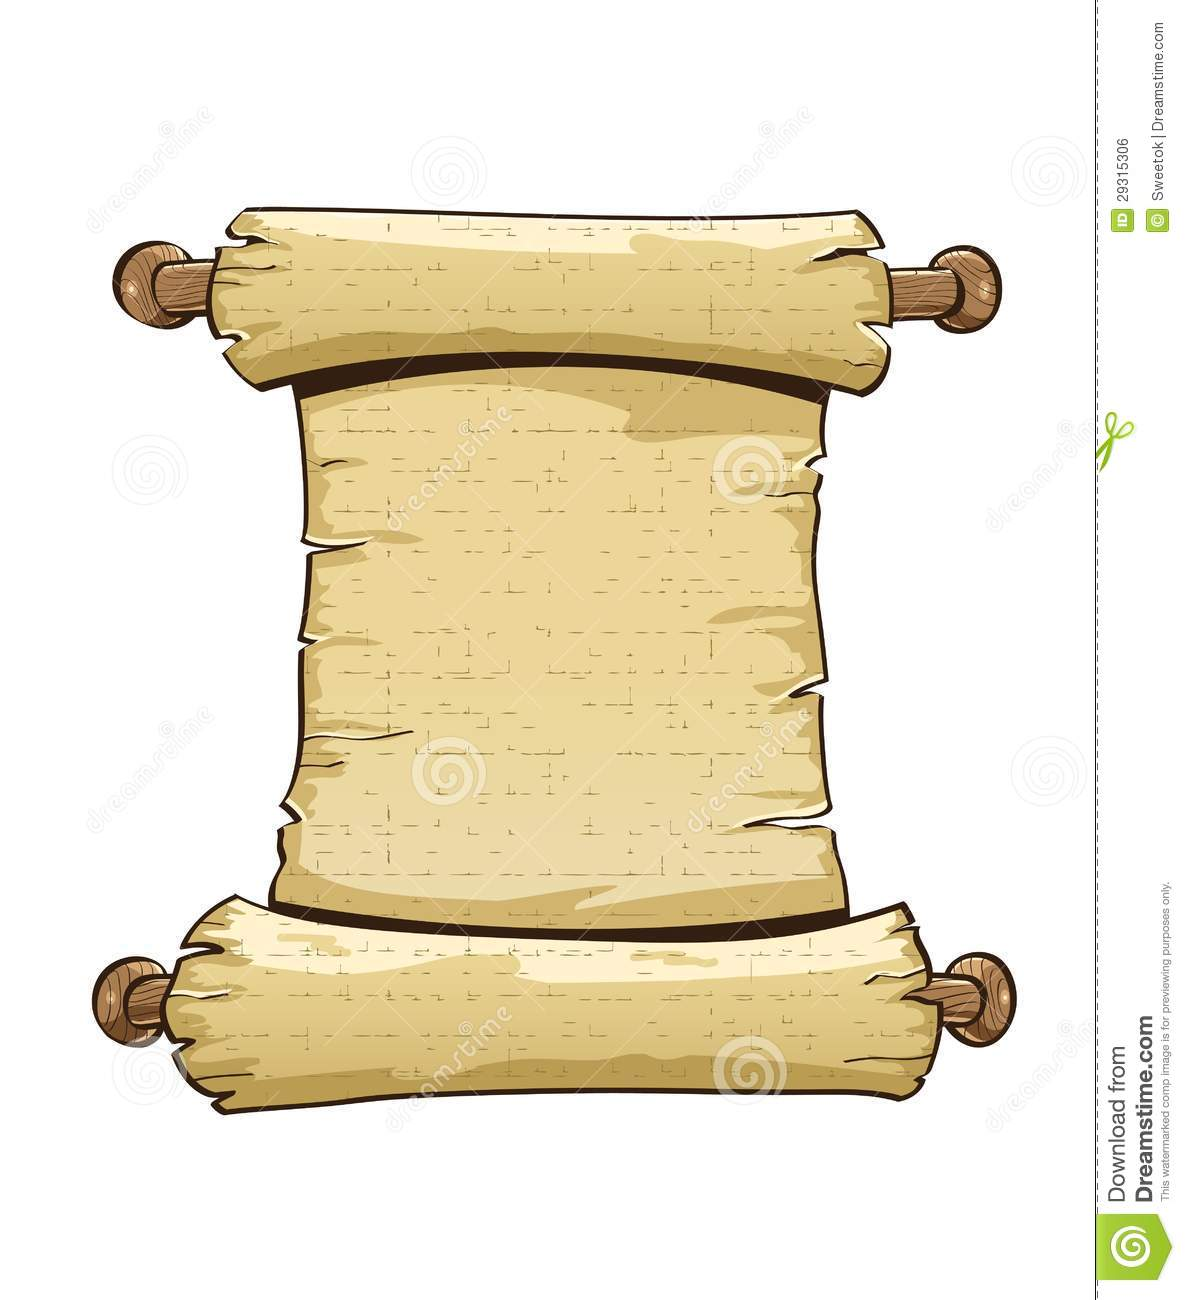 Antique Scroll Paper: Vintage Paper Scroll Royalty Free Stock Image